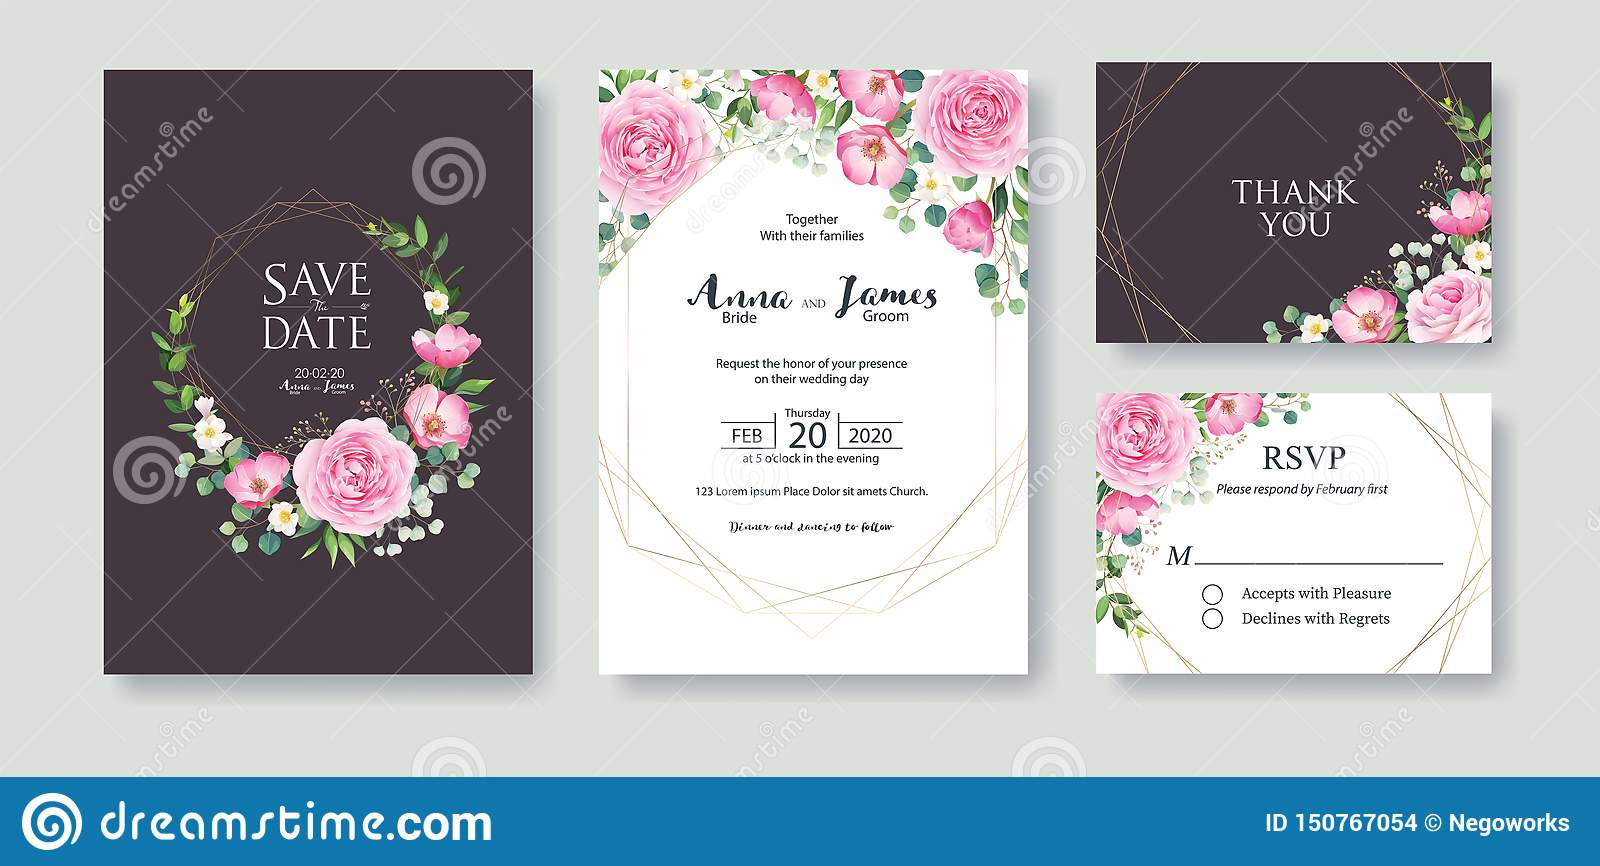 Wedding Invitation, save the date, thank you, rsvp card Design template. Vector. Summer flower, pink rose, silver dollar, Wax